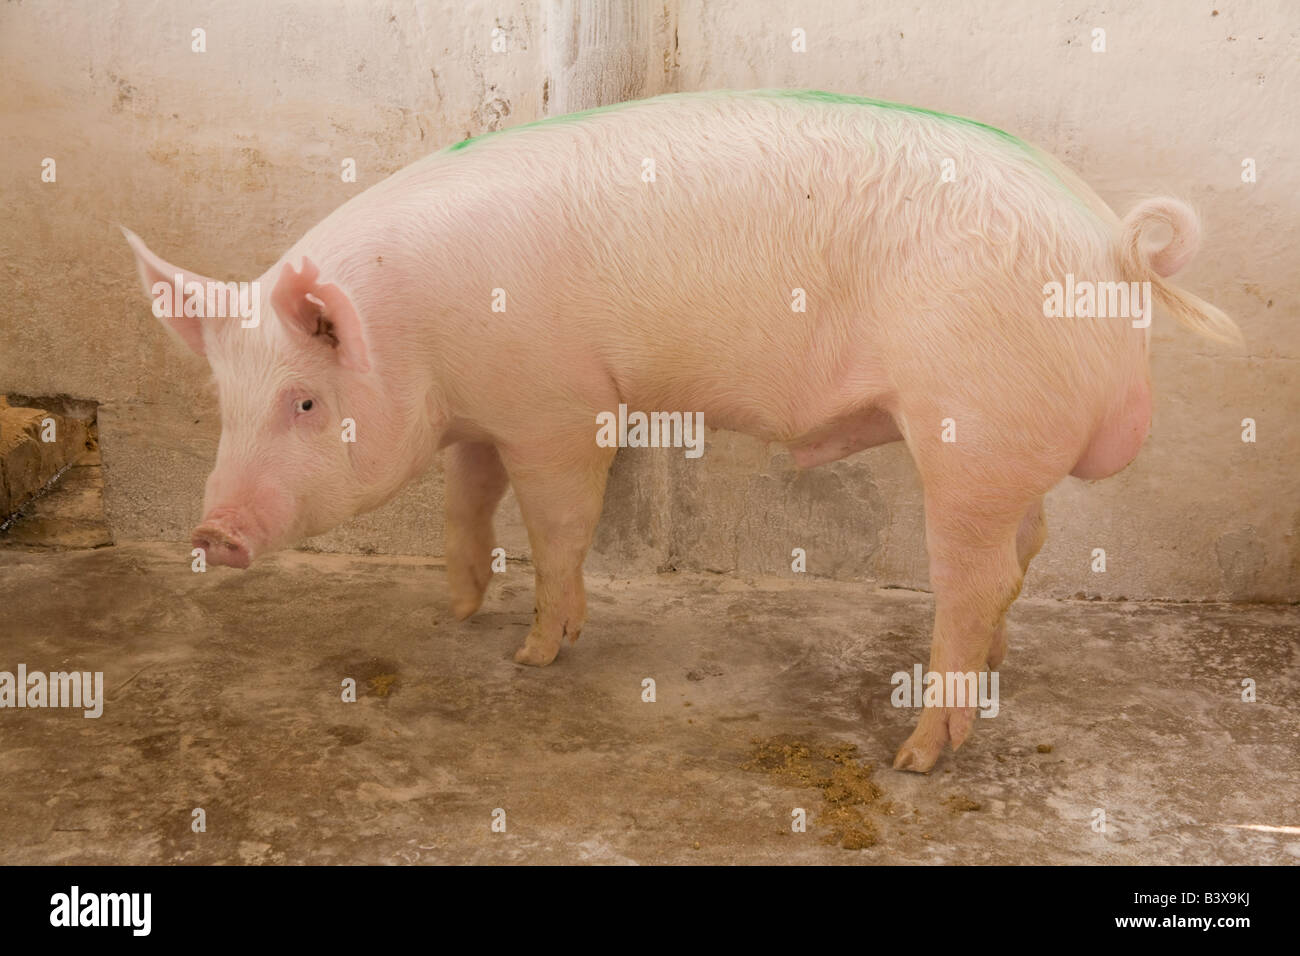 Breeding boar on a pig farm in Kafuie Lusaka Zambia Africa - Stock Image